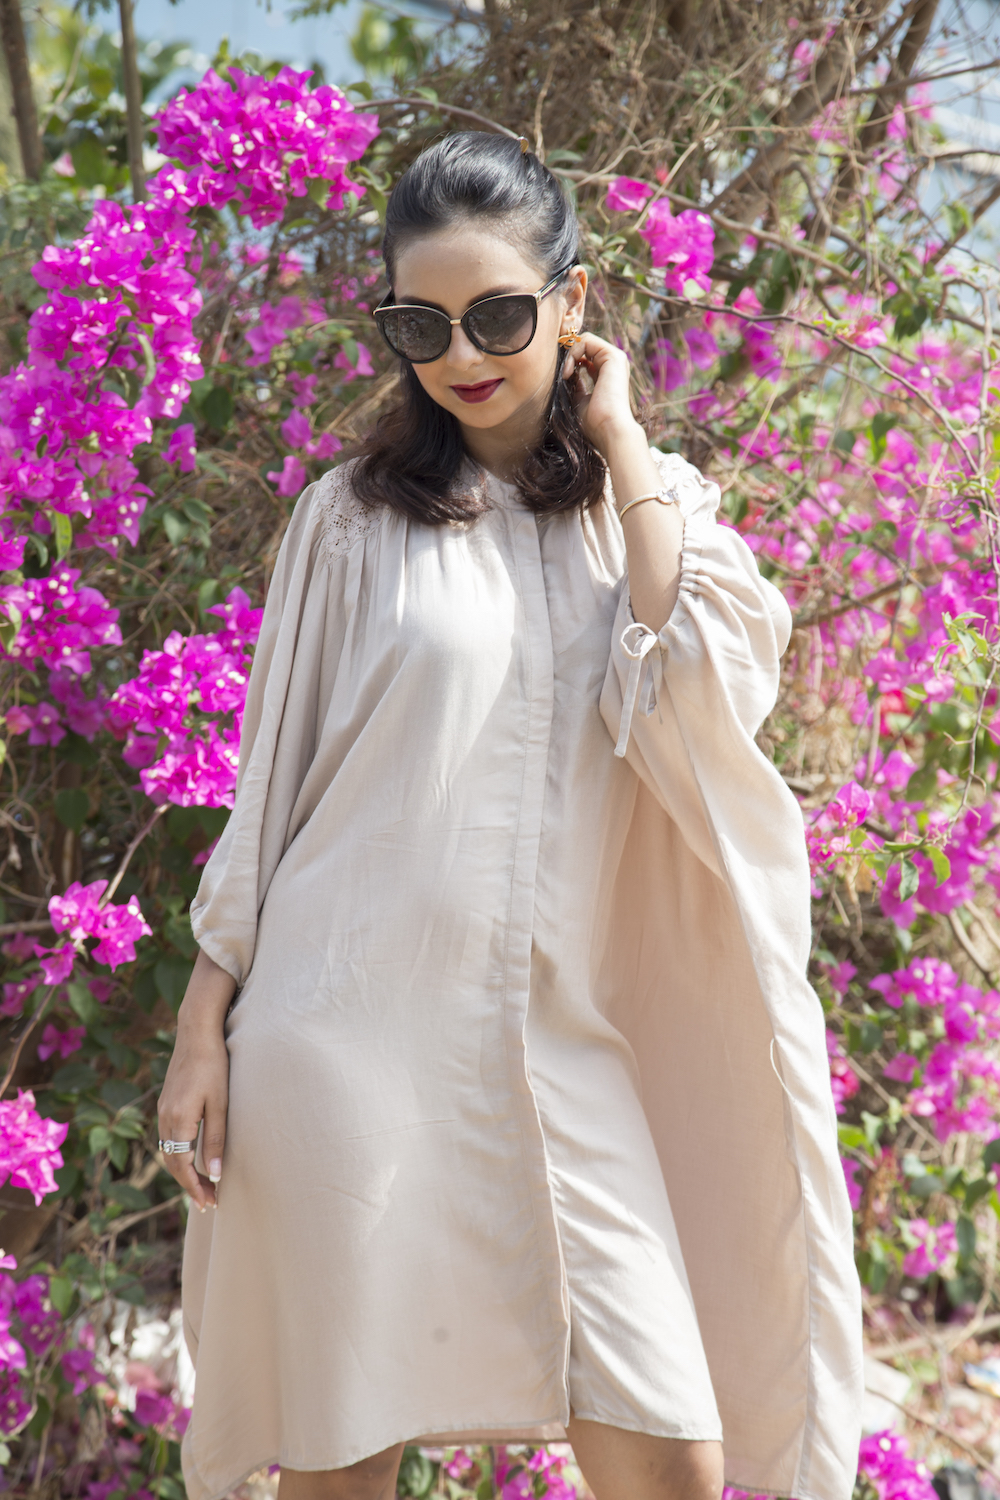 Myntra All You Need Deepika Padukone Collection Personal Style 5